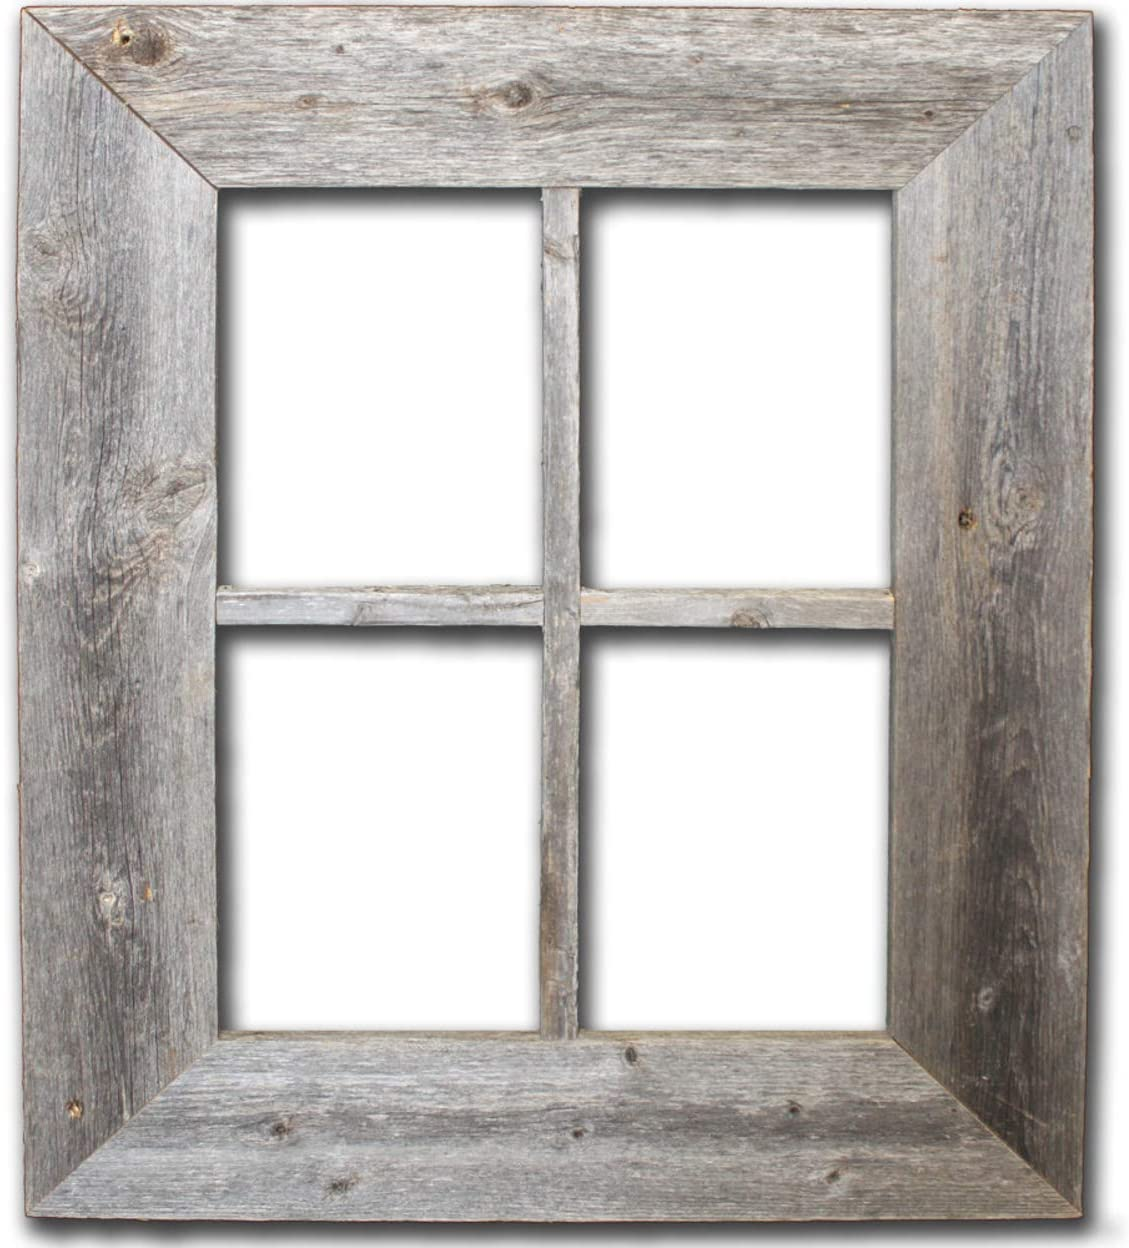 Amazon Com Old Rustic Window Barnwood Frames Not For Pictures By Rustic Decor Home Kitchen